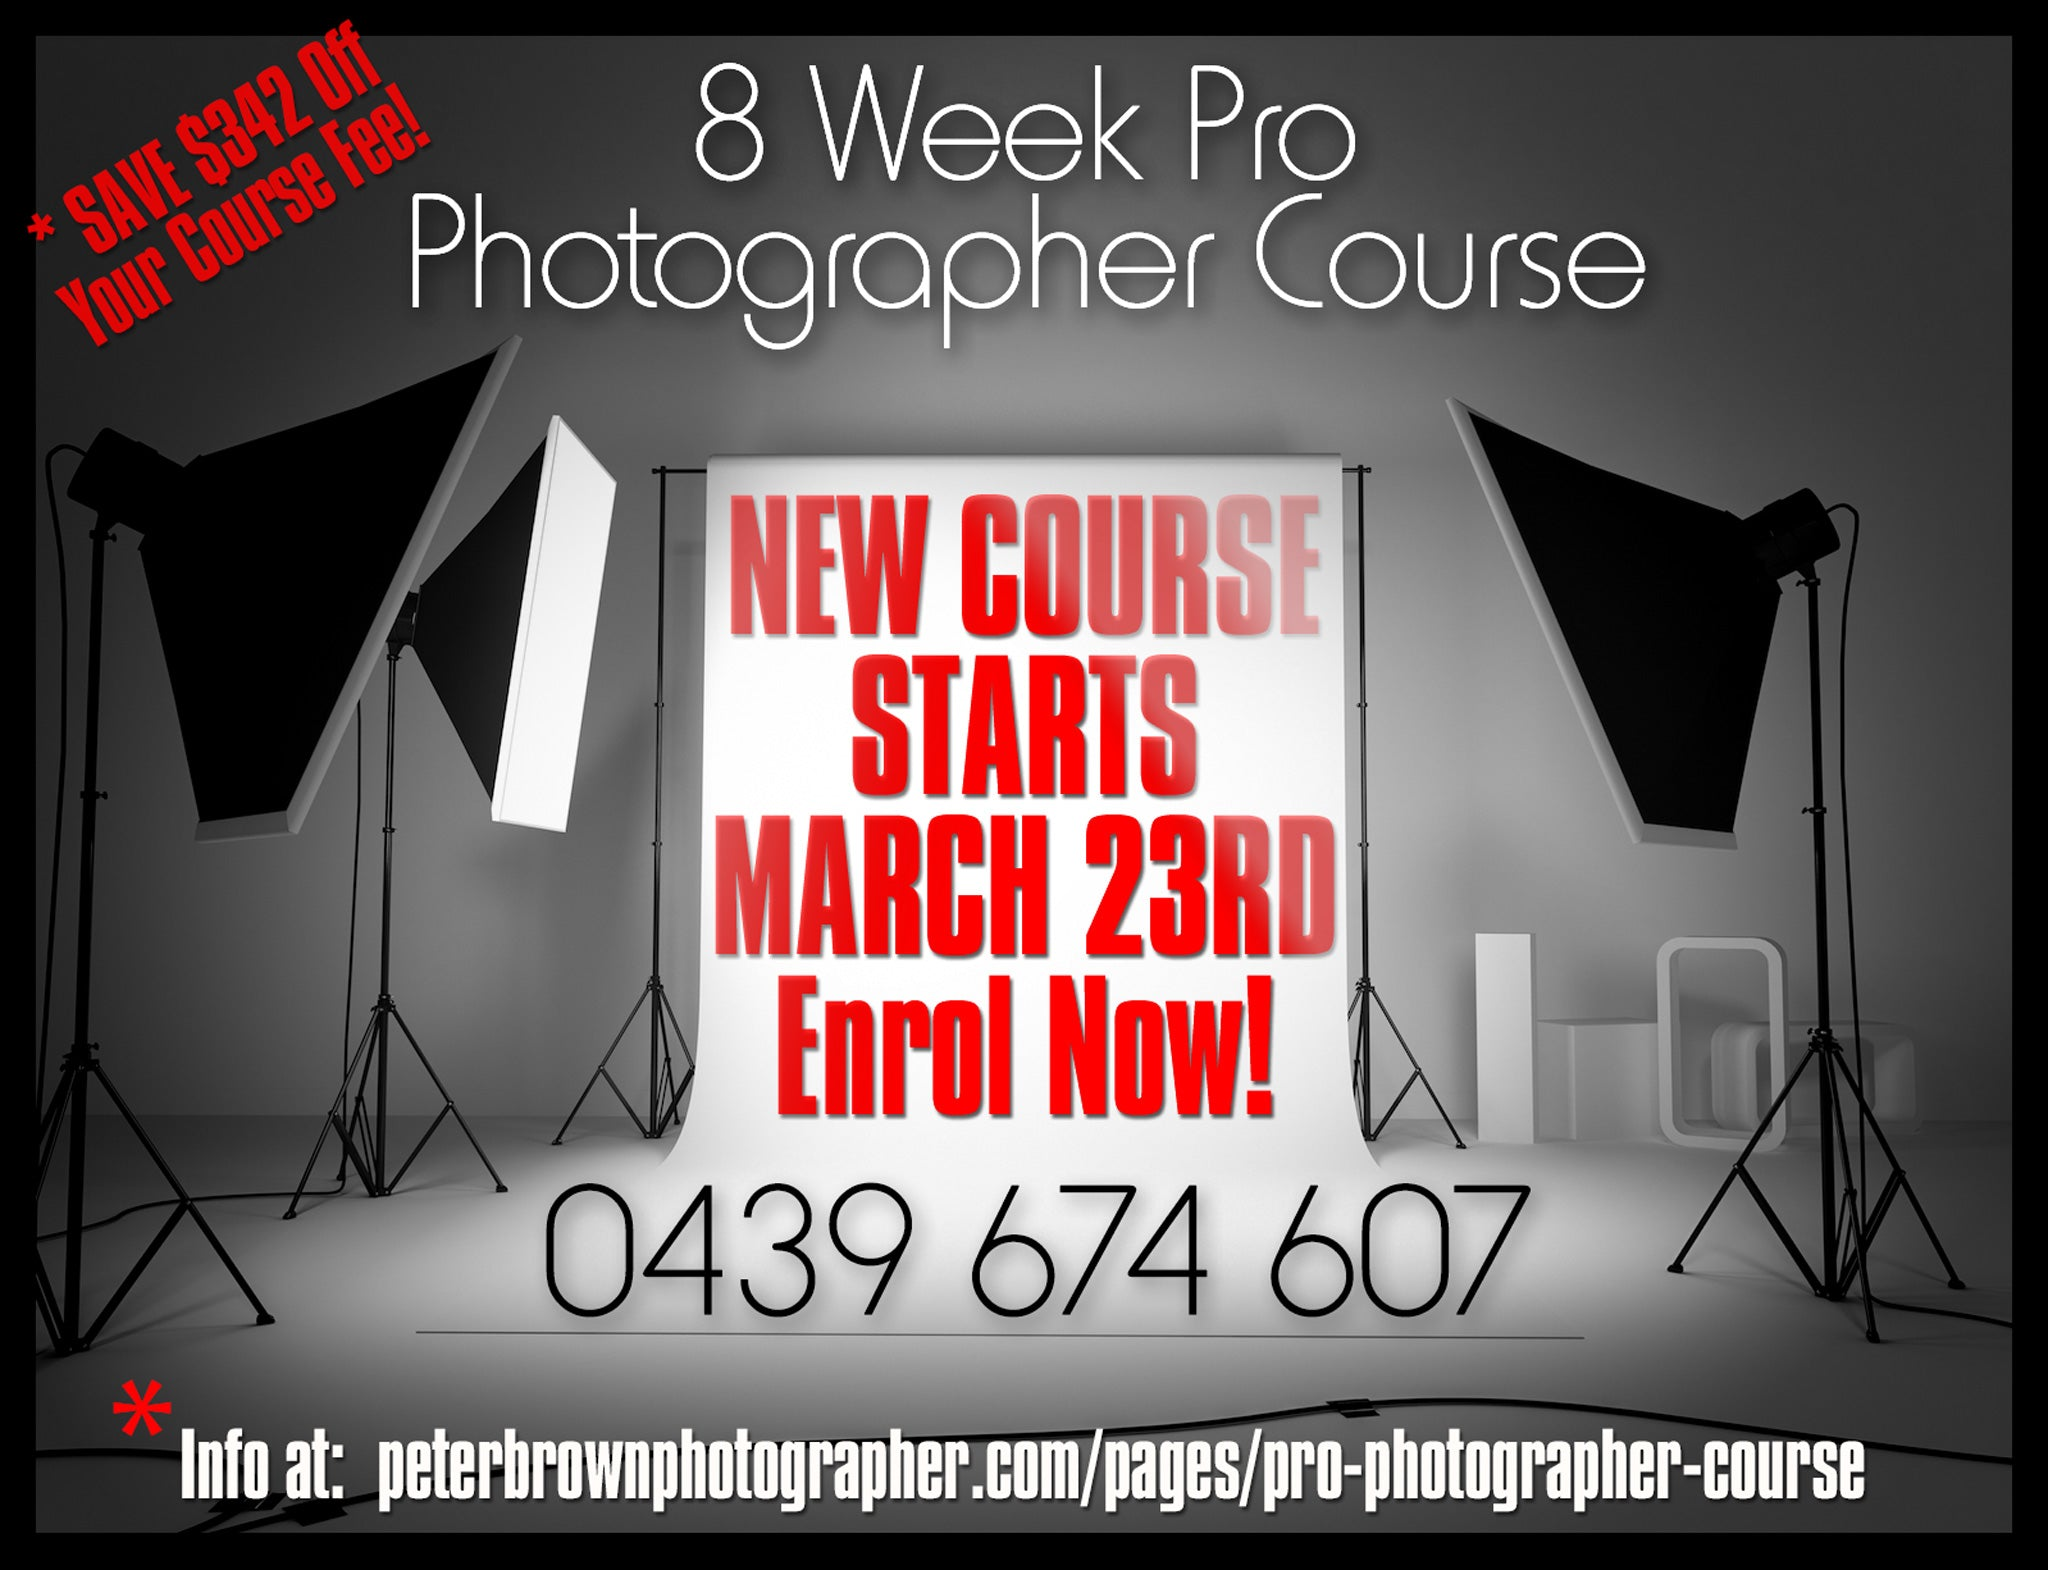 8 WEEK PRO PHOTOGRAPHER COURSE Starting March 23rd